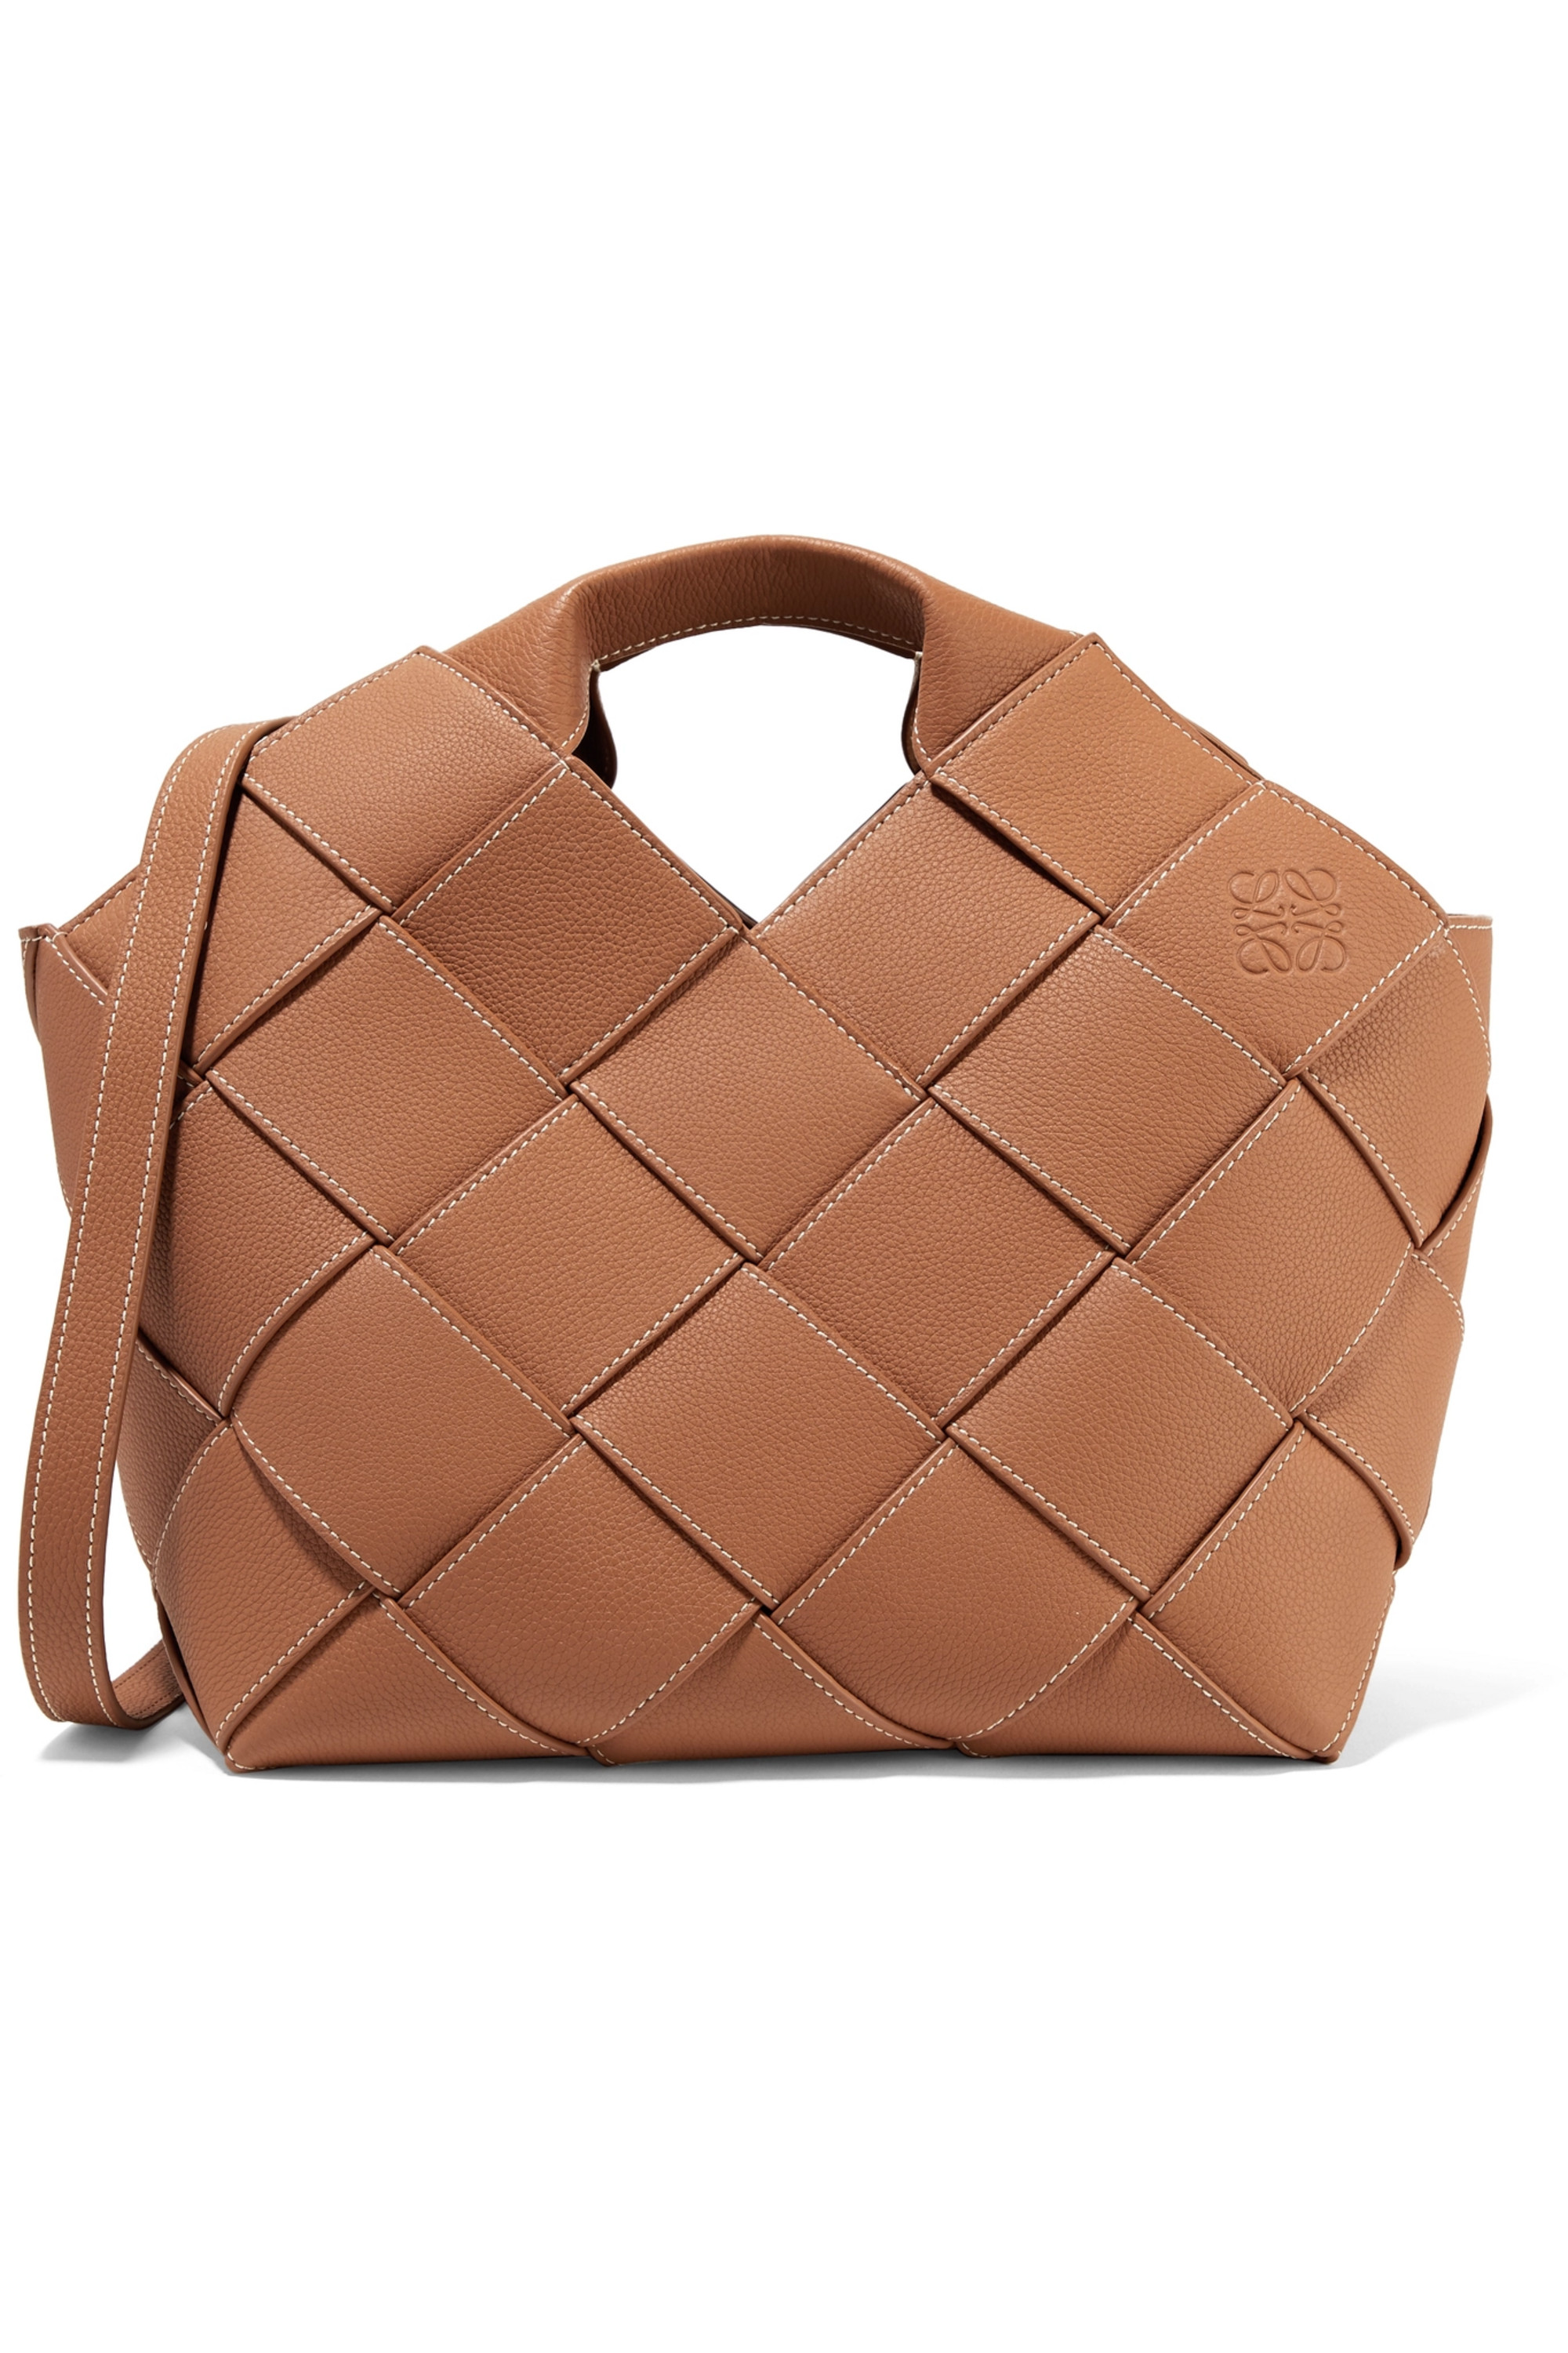 Brown Woven Textured-leather Tote | Loewe